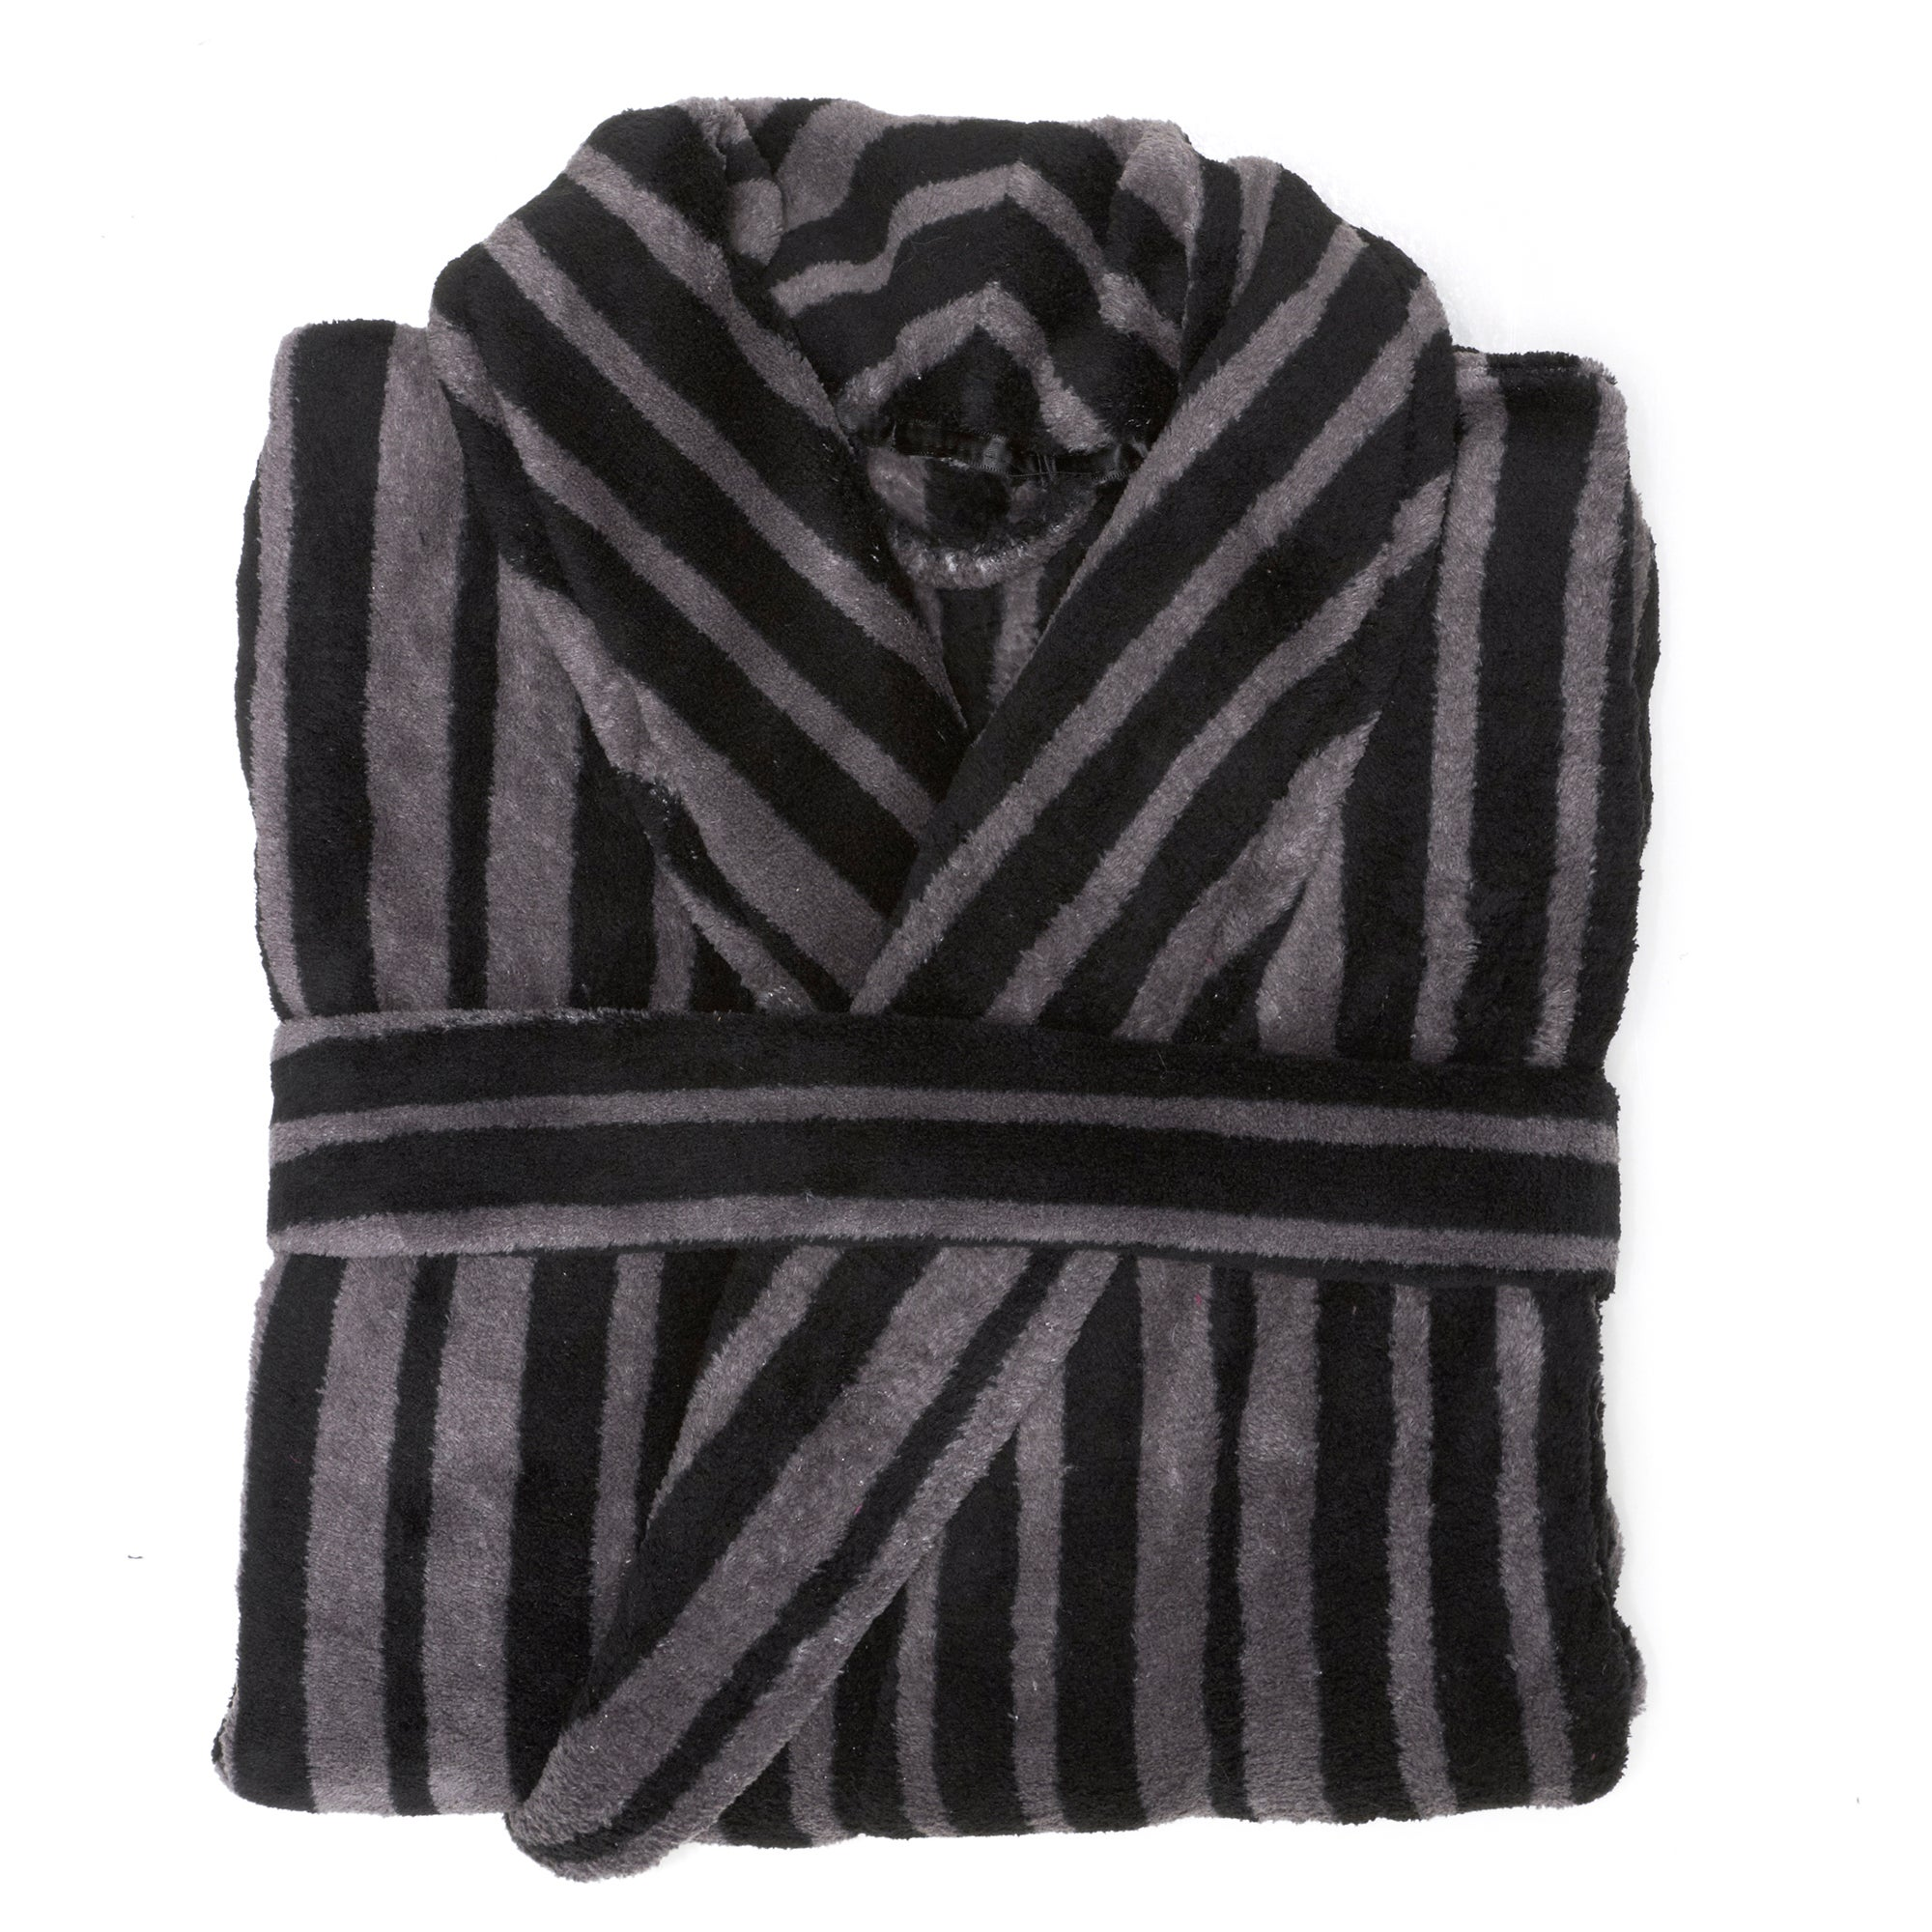 Mens Stripe Bathrobe